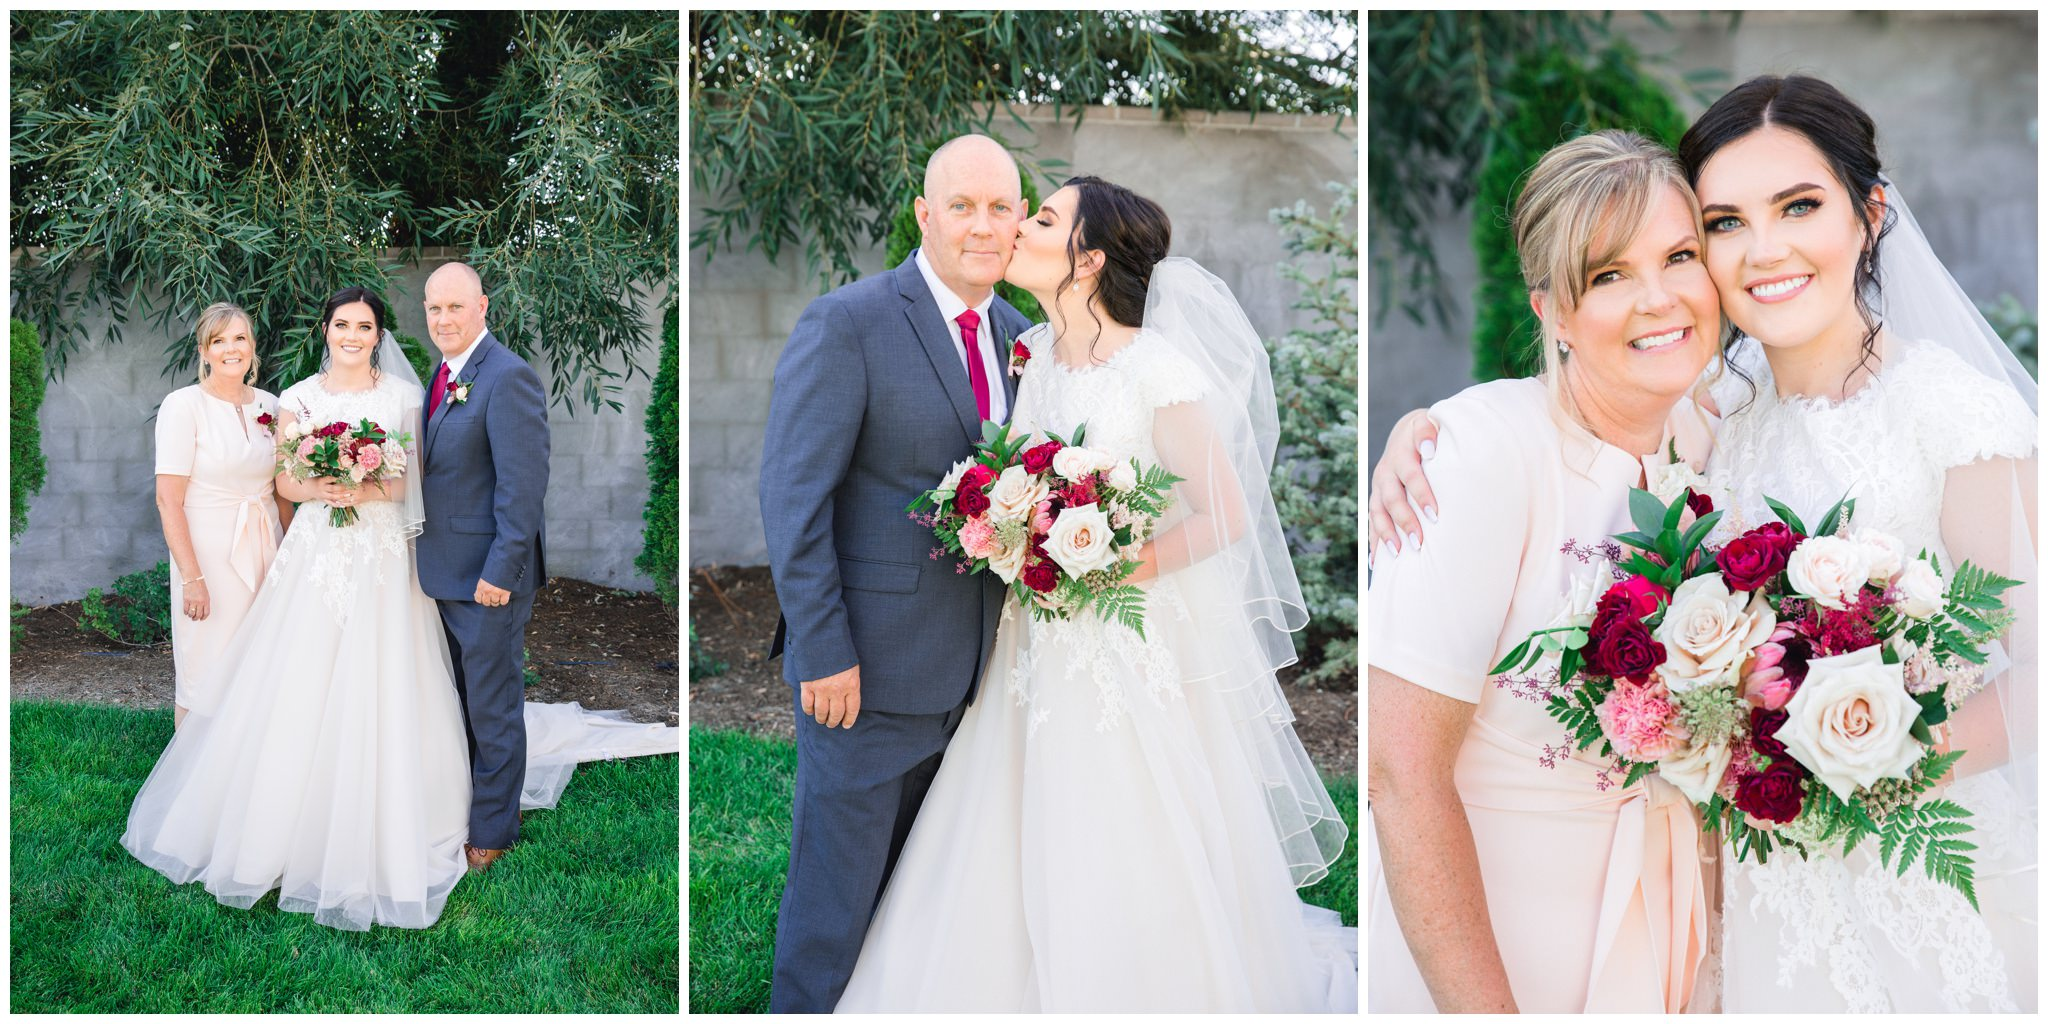 Bride and family pictures in the summer outside at the wild oak wedding venue in Lindon utah